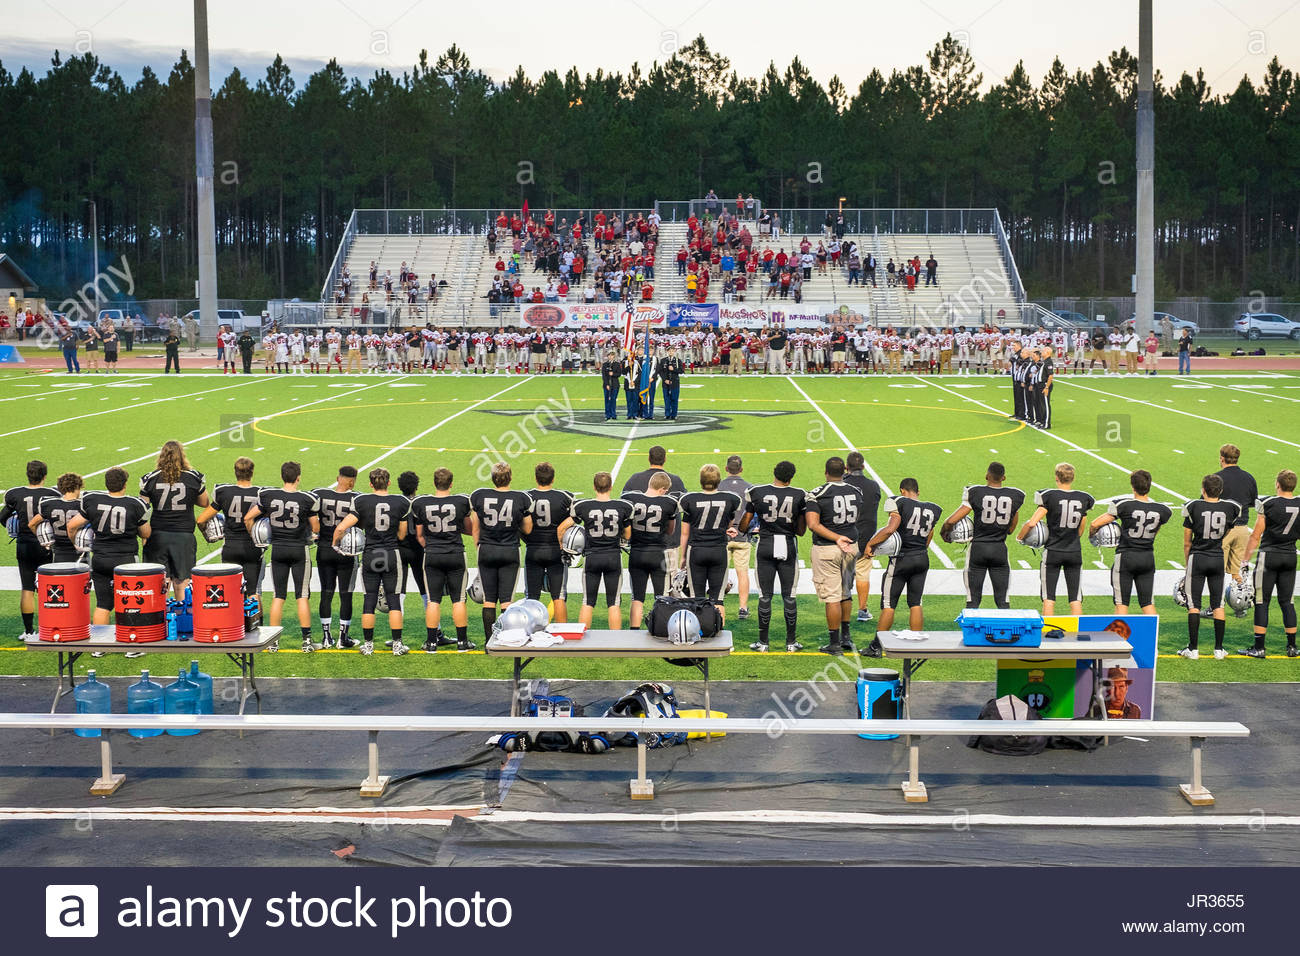 High school football game, teams standing for the national anthem, Lacombe Louisiana, United States - Stock Image